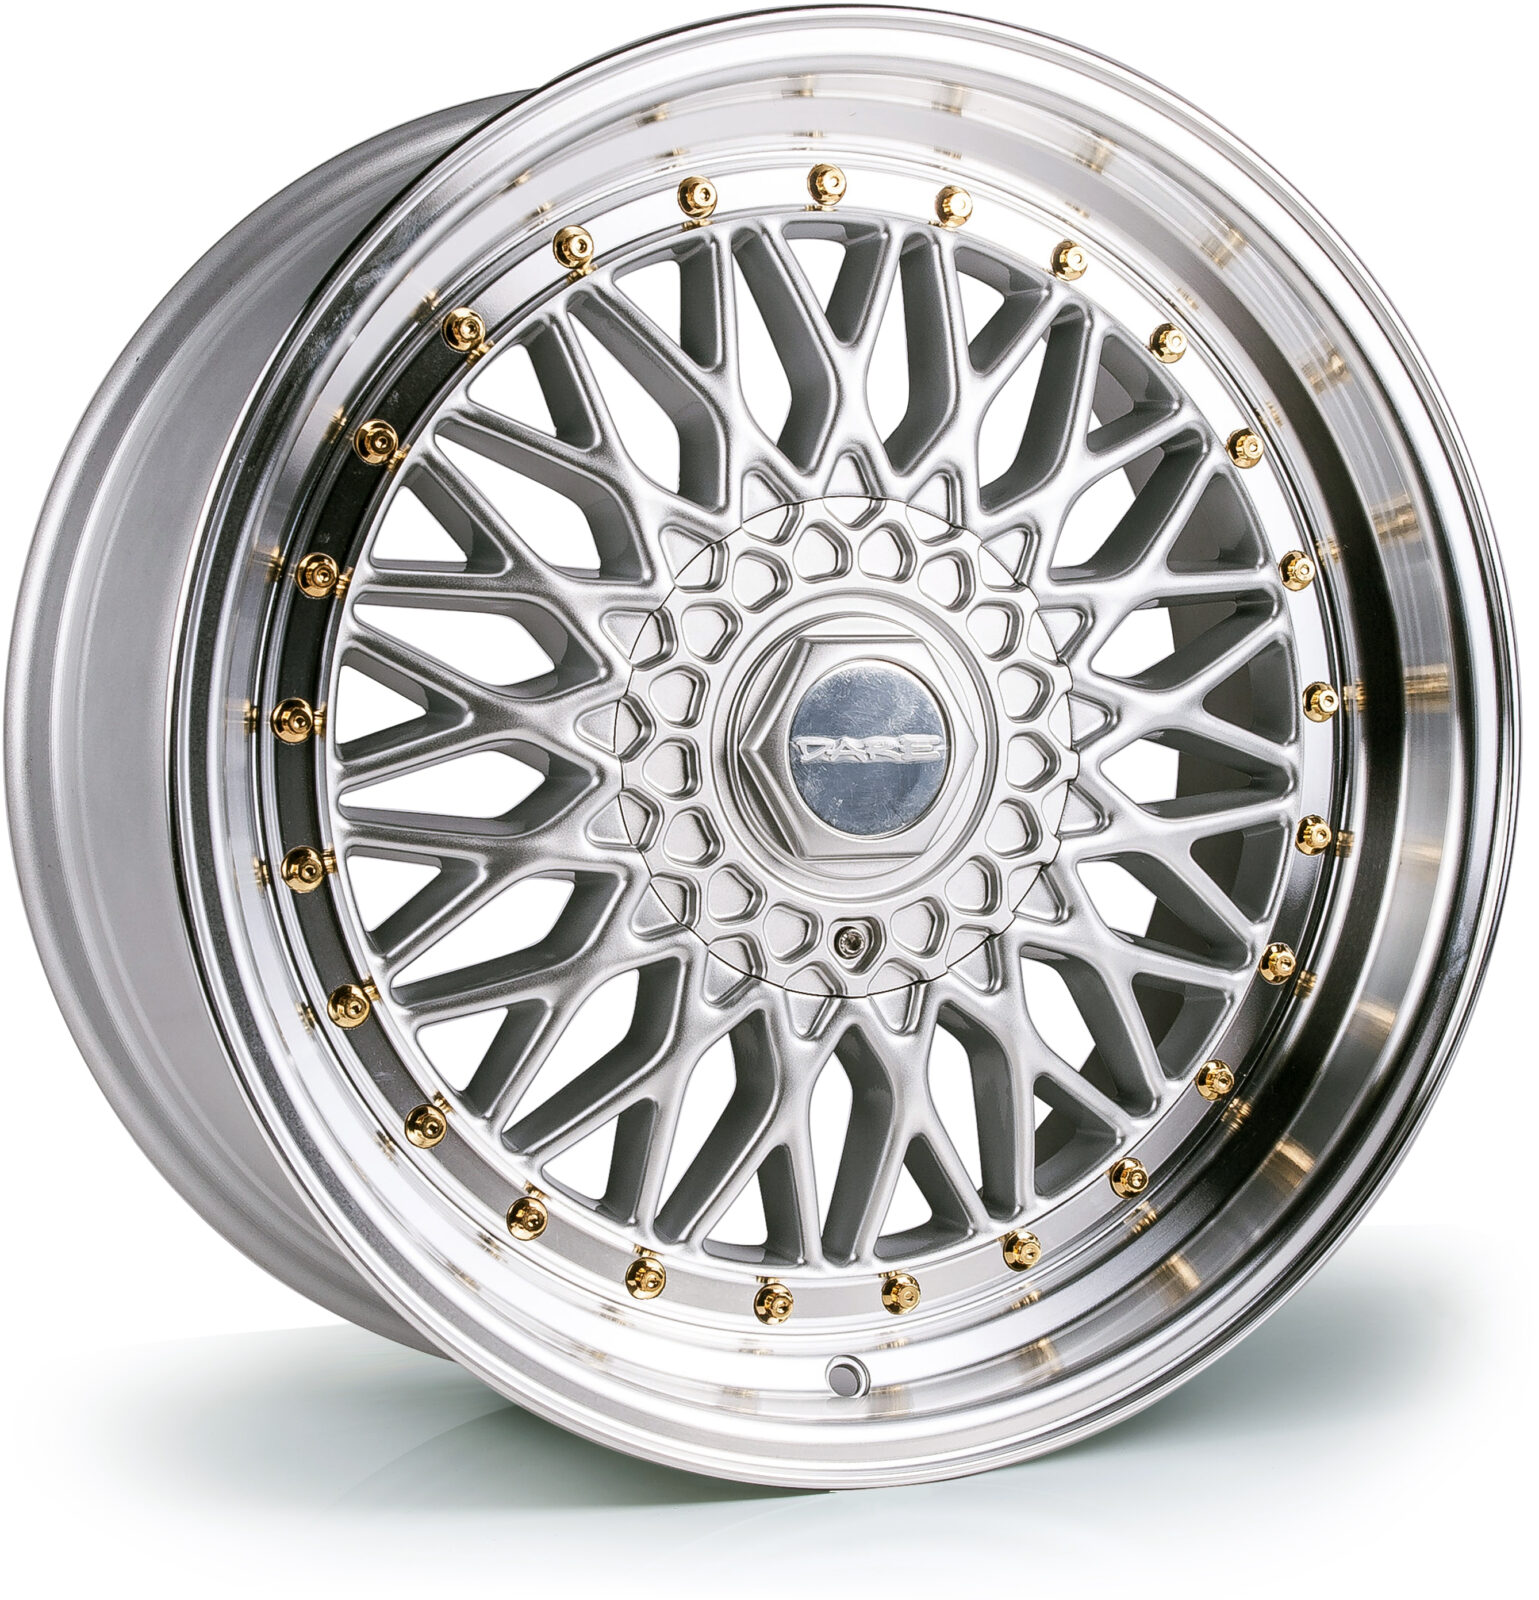 DARE MOTORSPORT RS hliníkové disky 8,5x17 5x112-5x120 ET20 Silver Polished / Gold Rivets